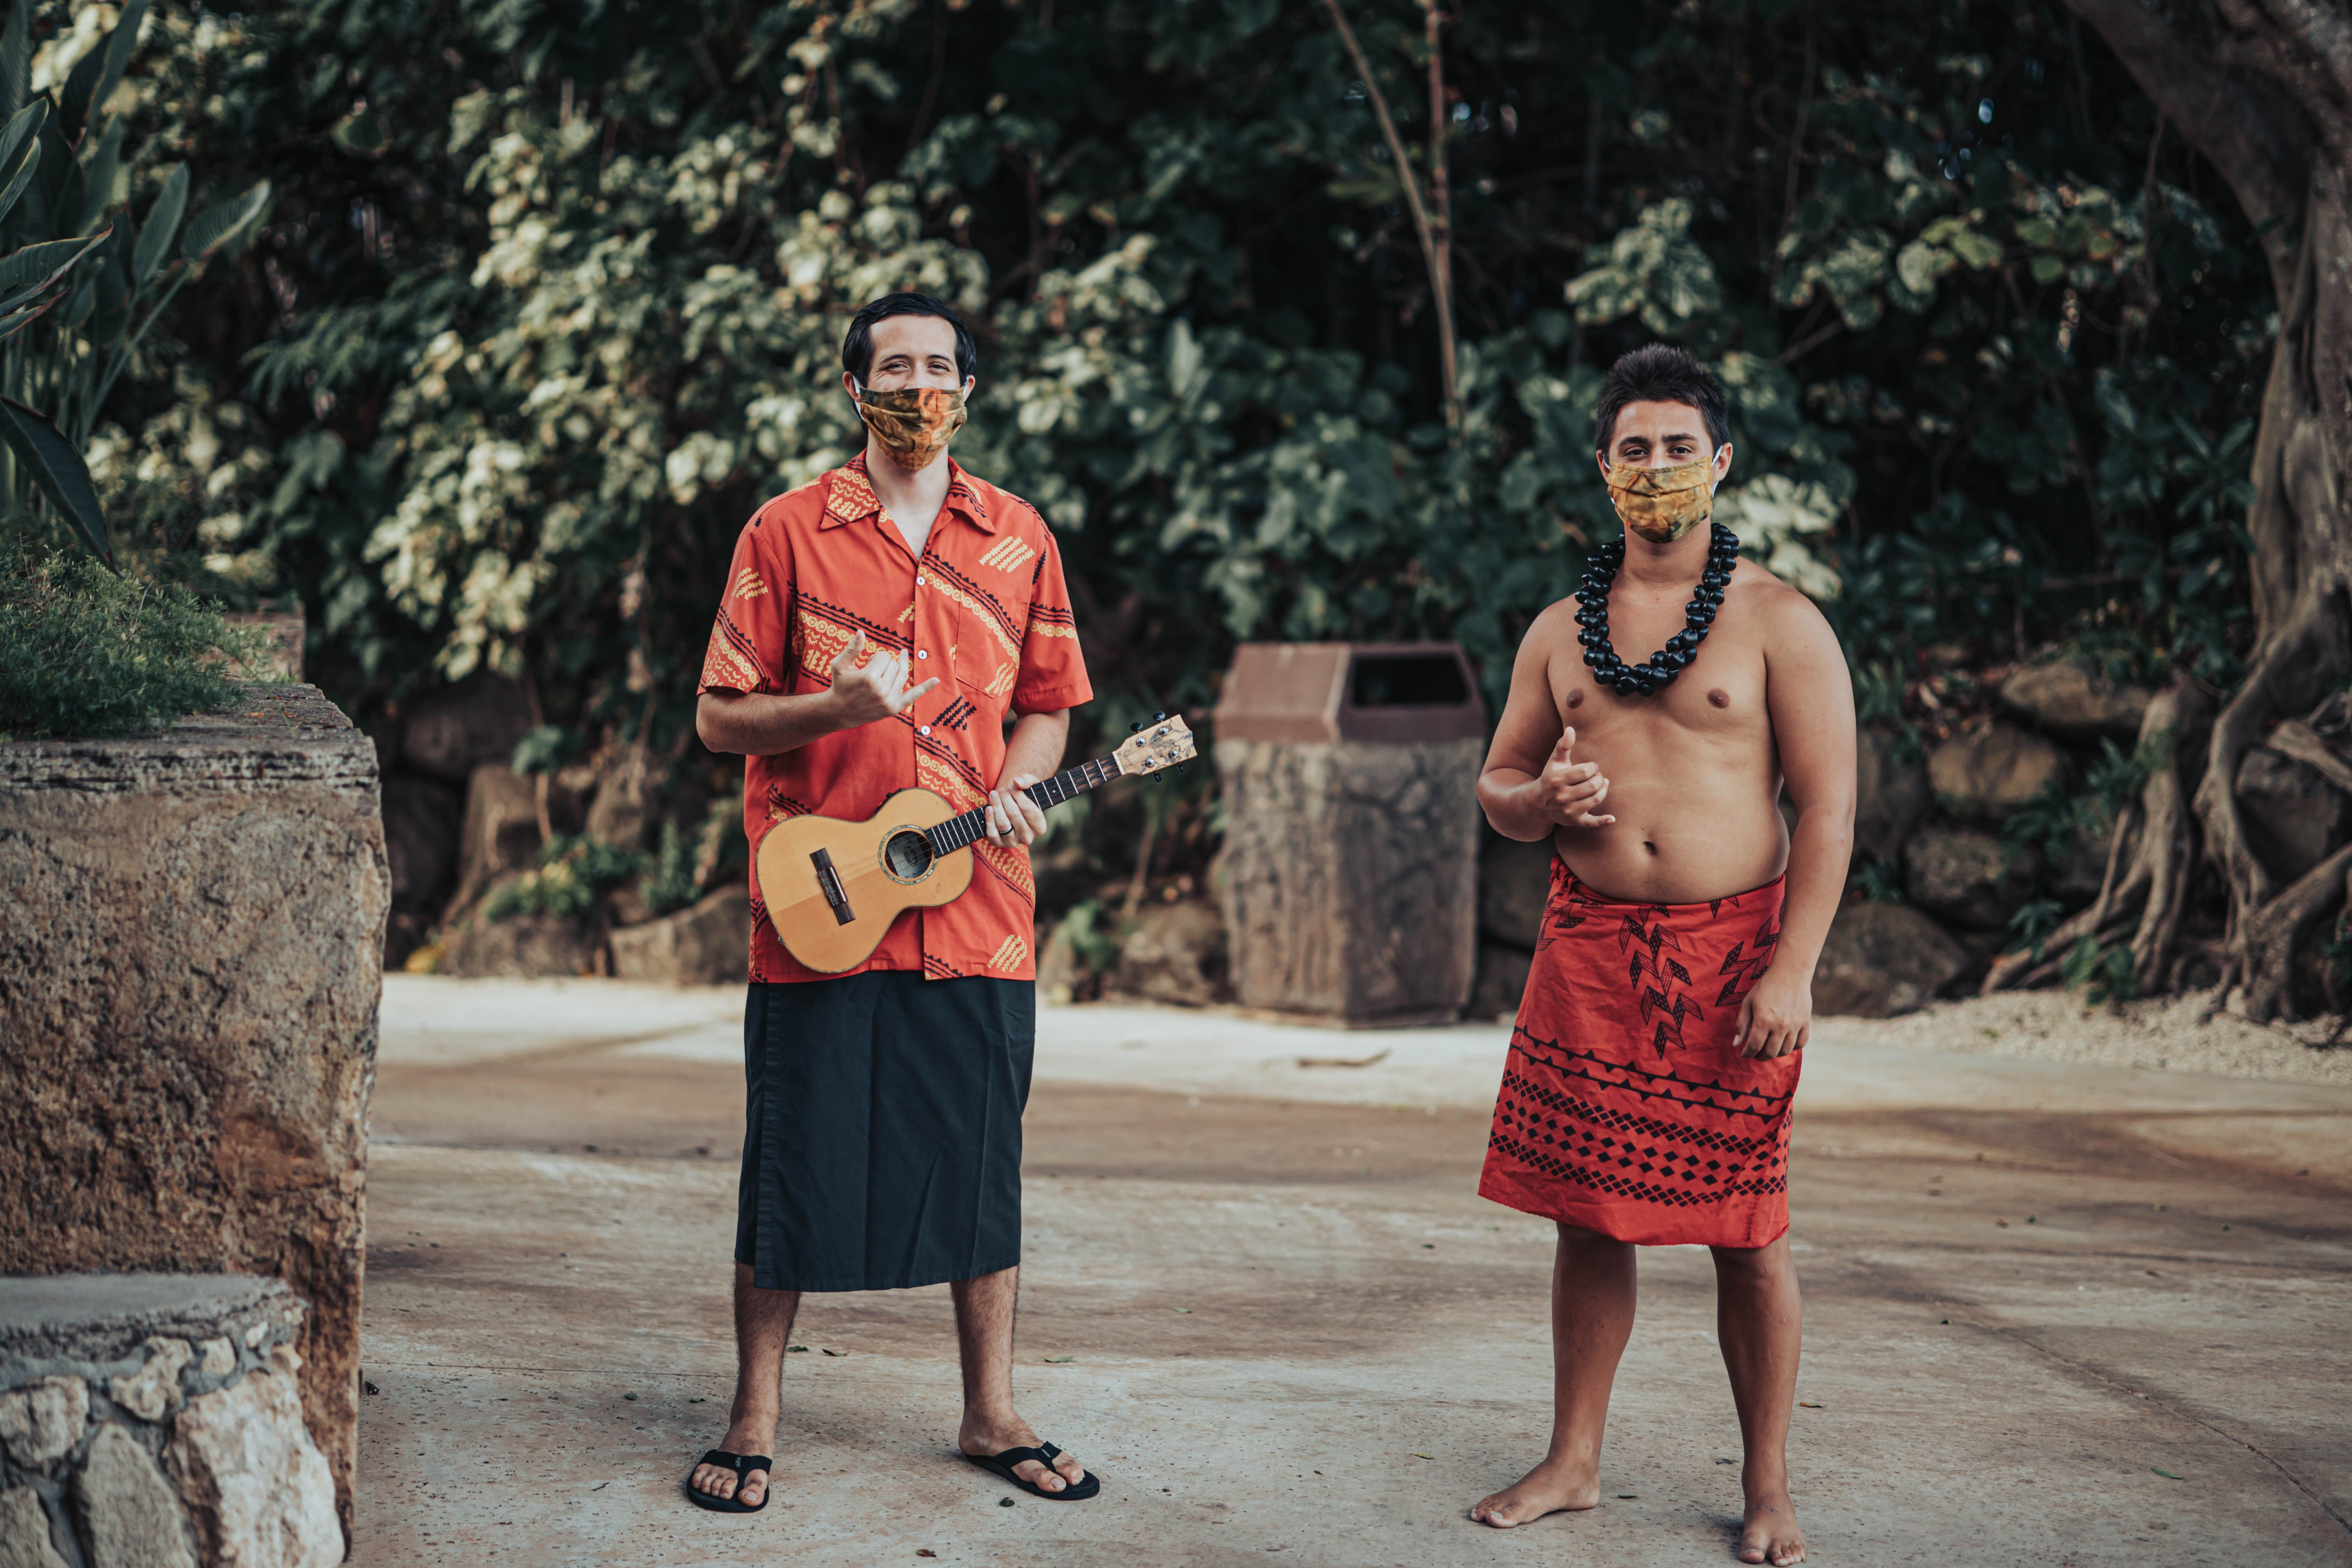 photograph of two island villagers at the Polynesian Cultural Center ukulele shaka northshore oahu hawaii